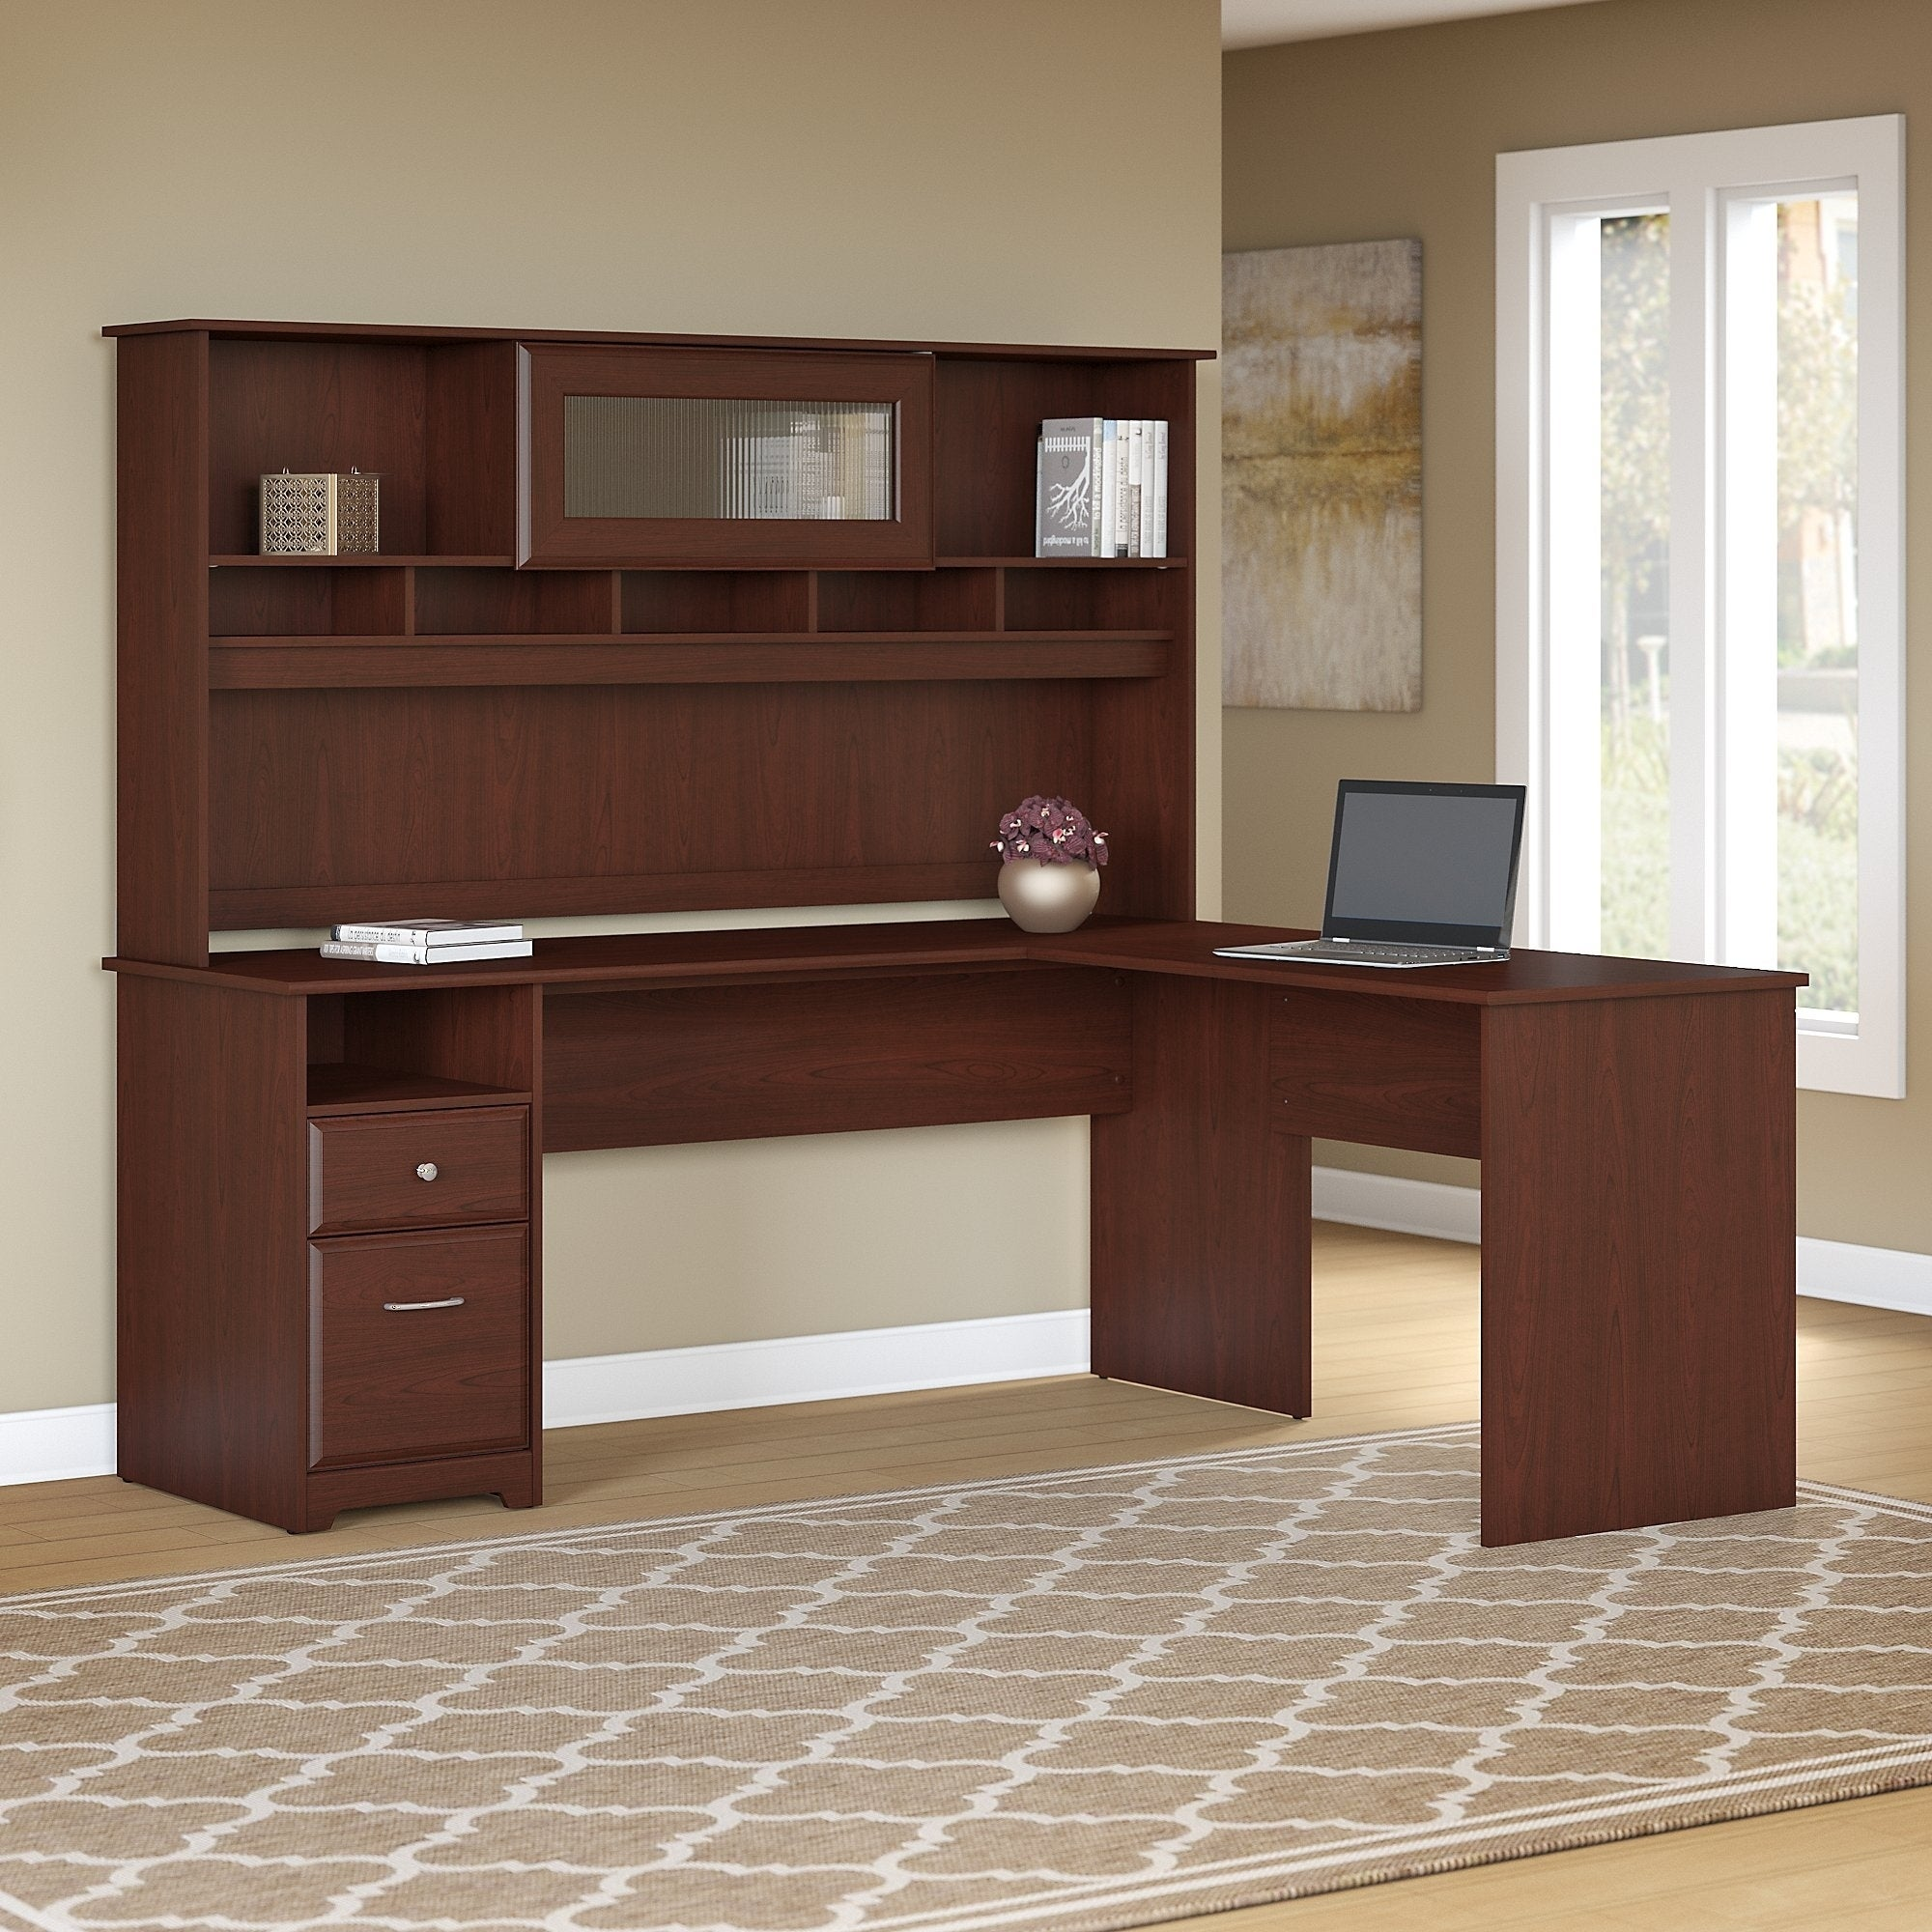 wall desk products drawers gardiner by sets aspenhome imr with hutch modular furniture wolf and